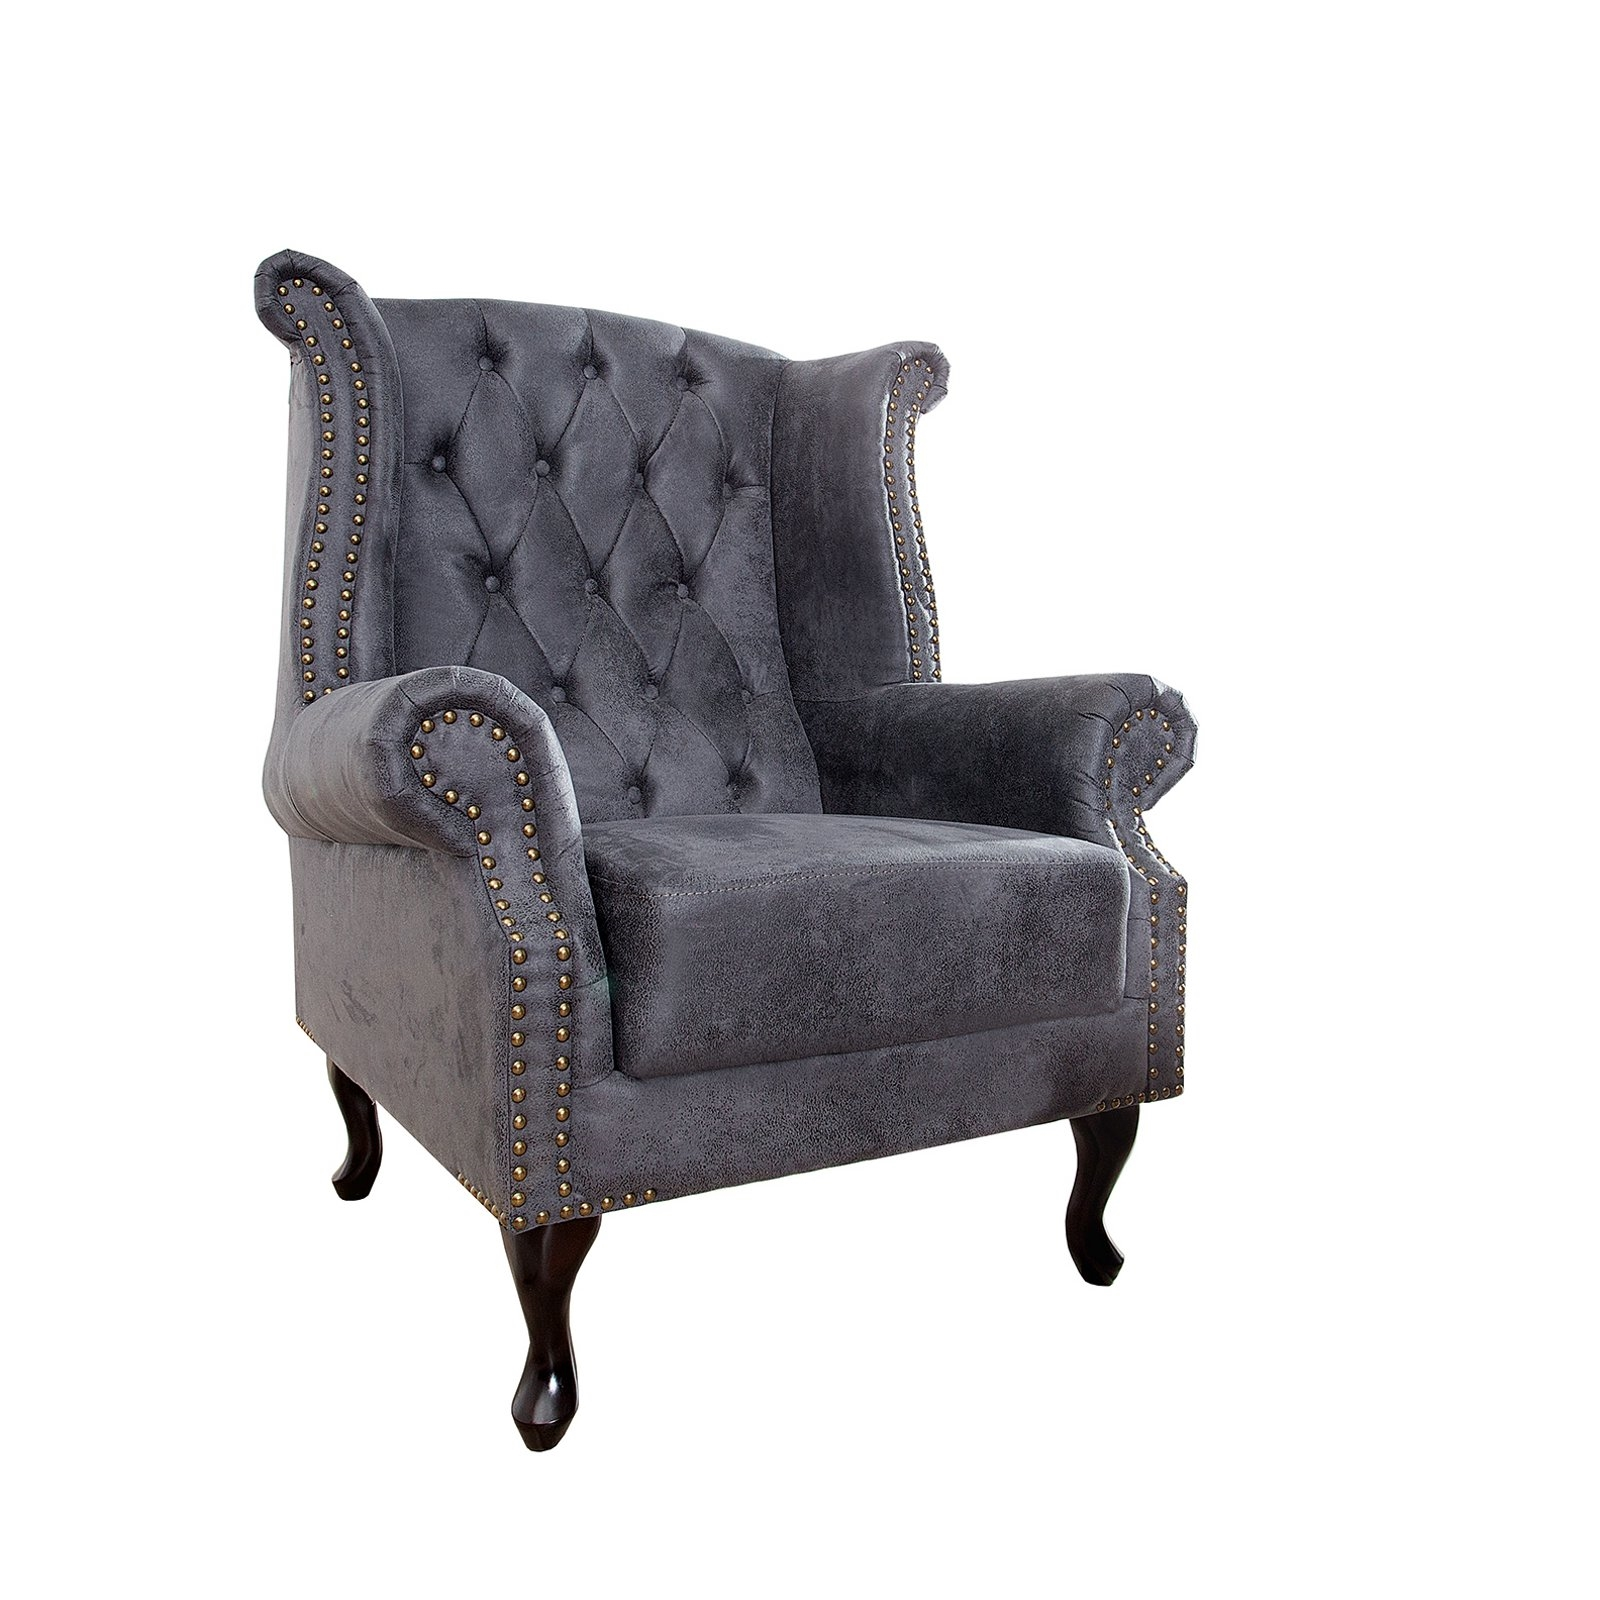 chesterfield armchair manchester antique grey 41 5 wing chair ebay. Black Bedroom Furniture Sets. Home Design Ideas